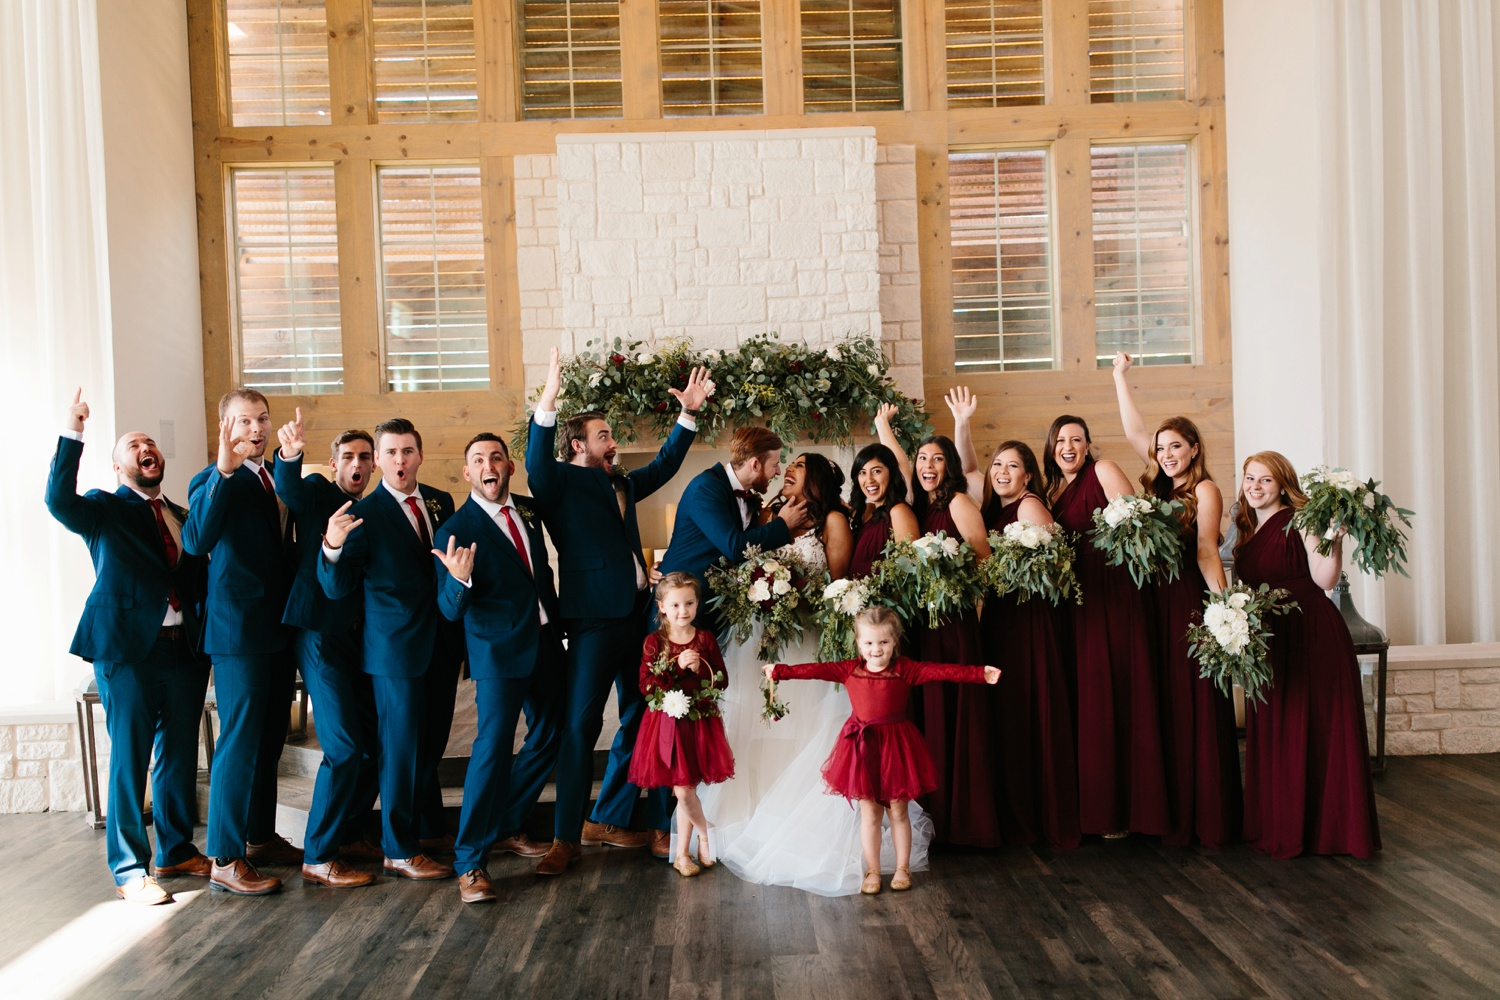 Grant + Lysette | a vibrant, deep burgundy and navy, and mixed metals wedding at Hidden Pines Chapel by North Texas Wedding Photographer Rachel Meagan Photography 120